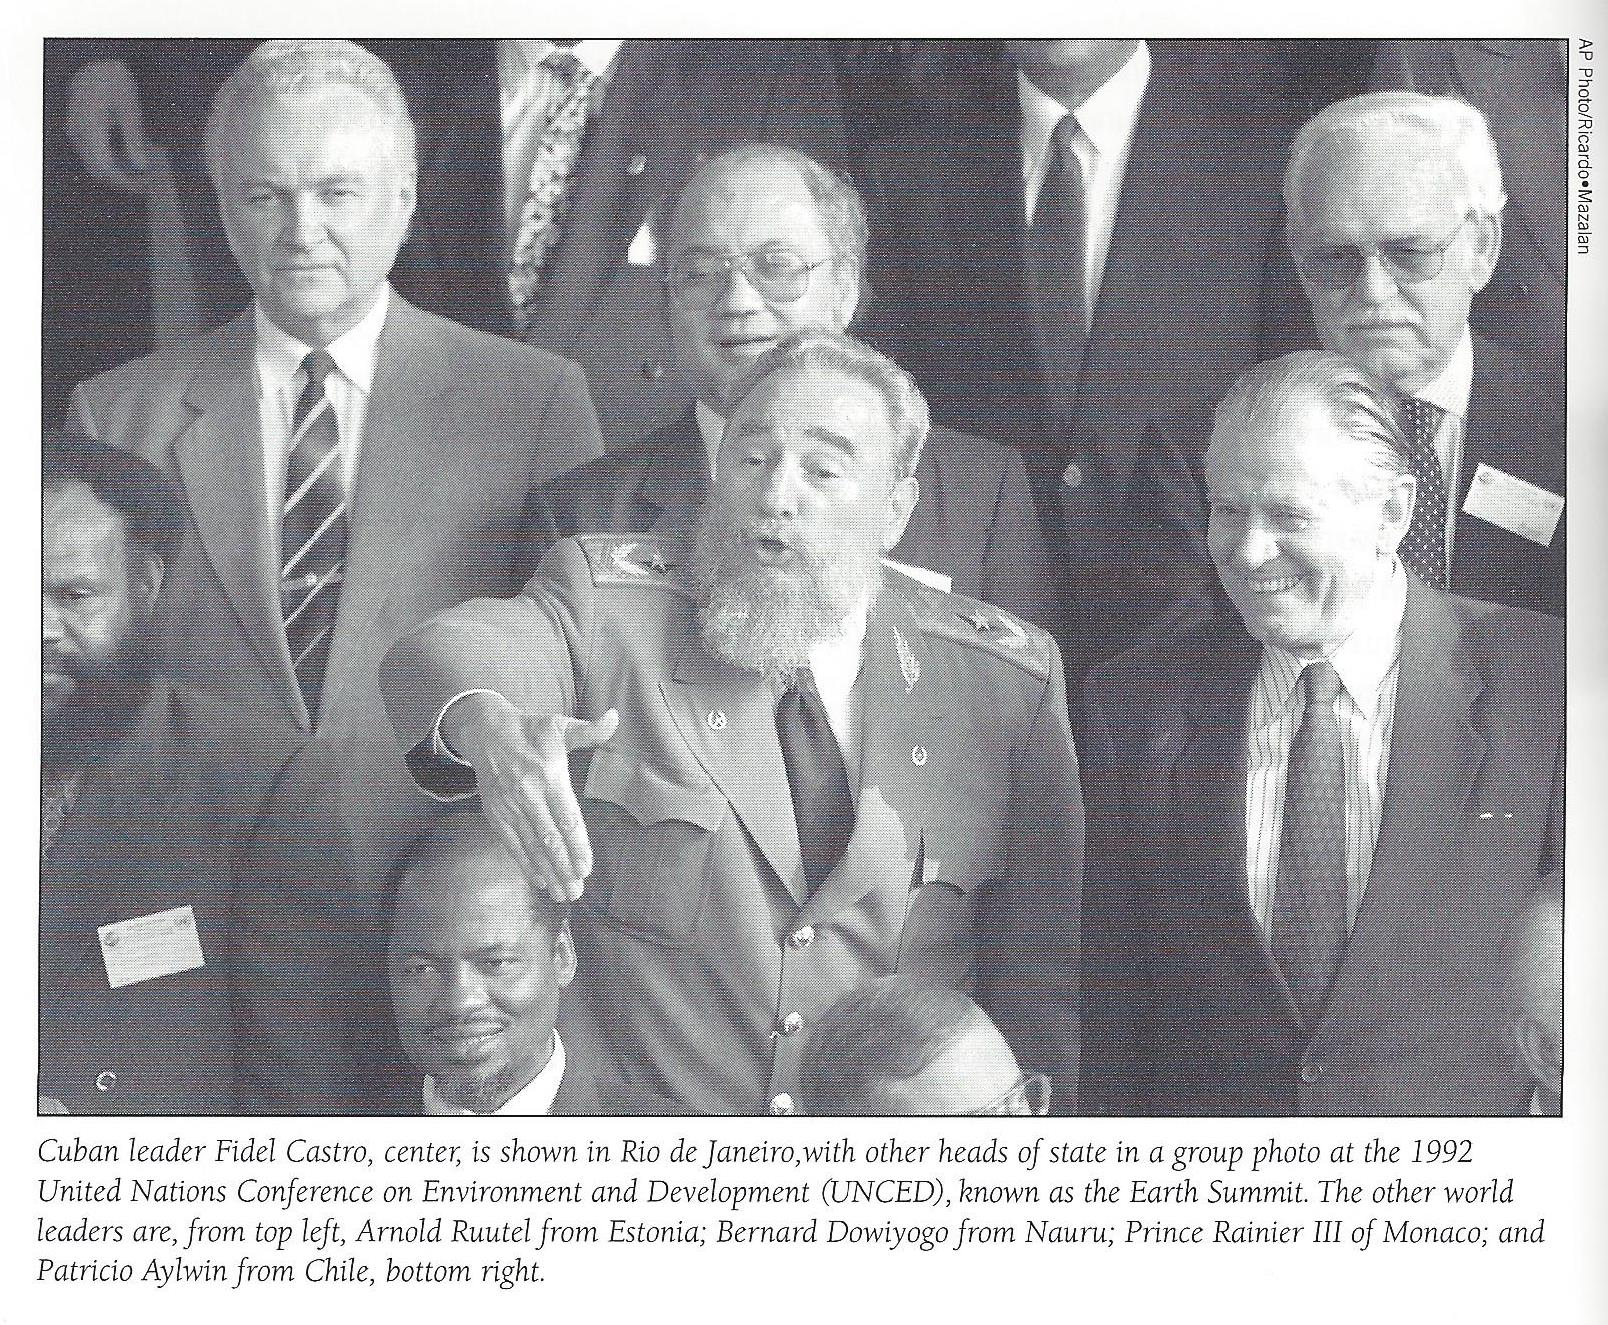 fidel-castro-at-earth-summit-1992